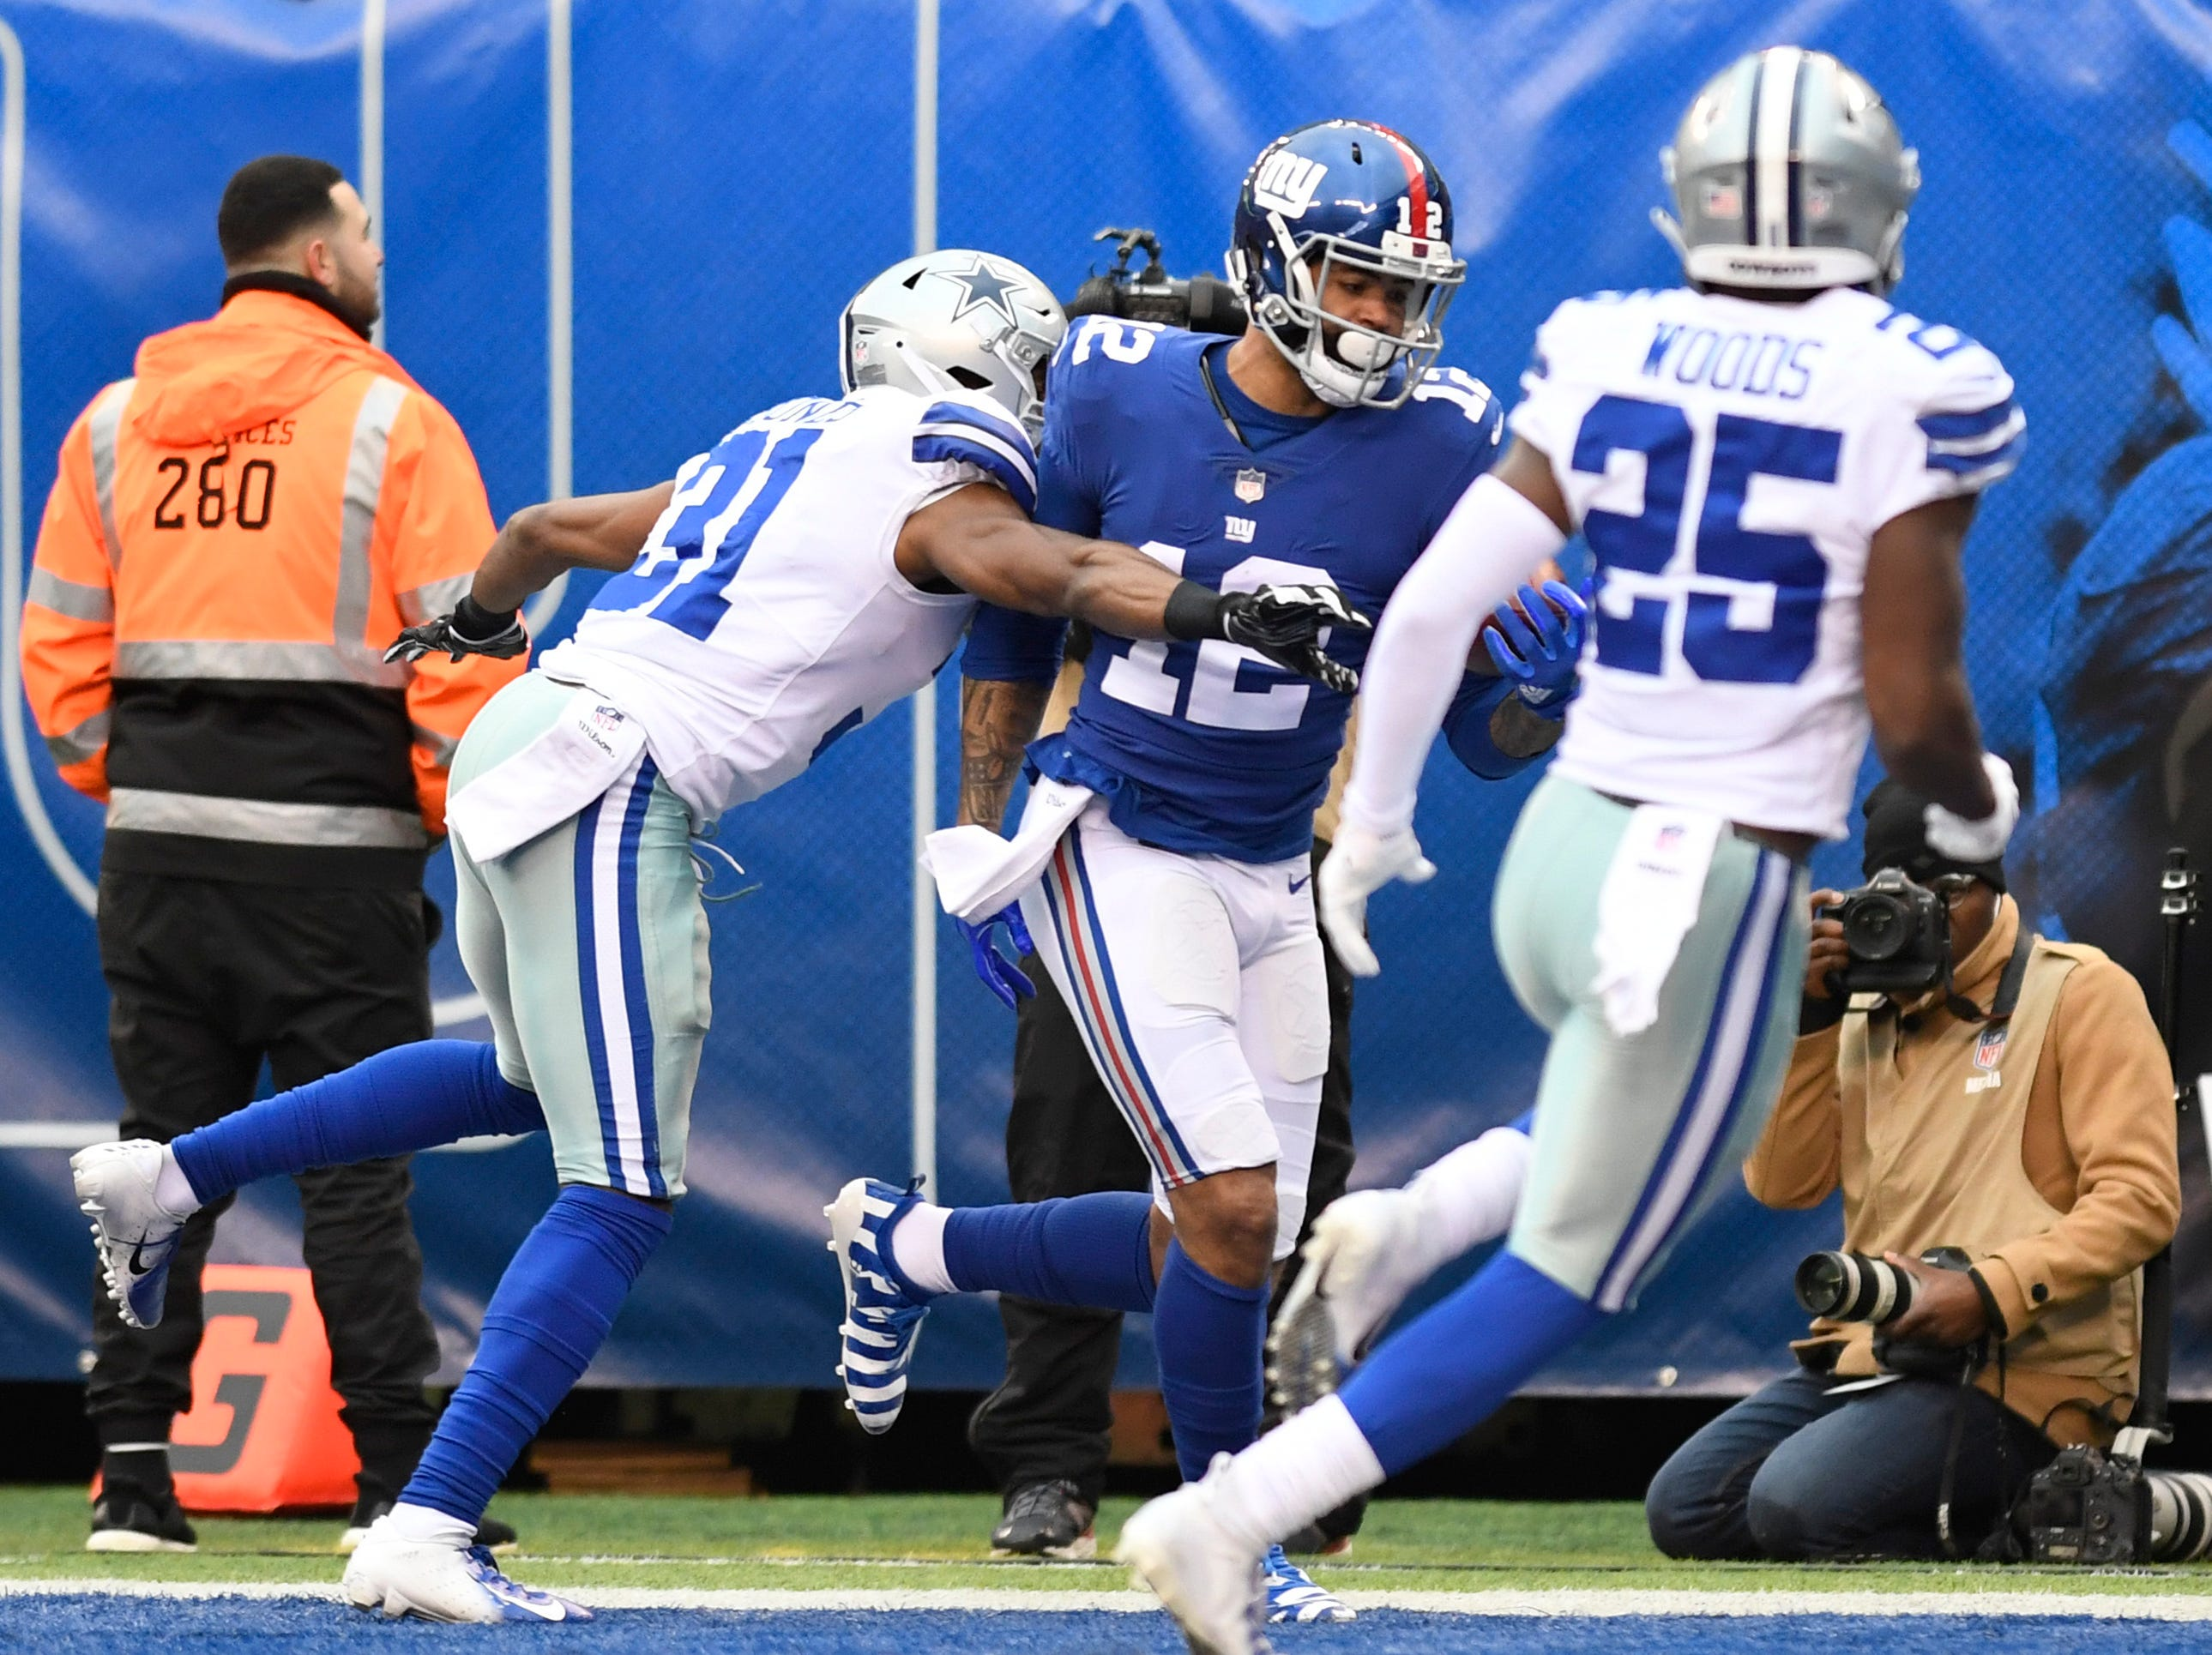 New York Giants wide receiver Cody Latimer (12) makes a one-handed catch for a touchdown in the first half. The New York Giants face the Dallas Cowboys in the last regular season game on Sunday, Dec. 30, 2018, in East Rutherford.